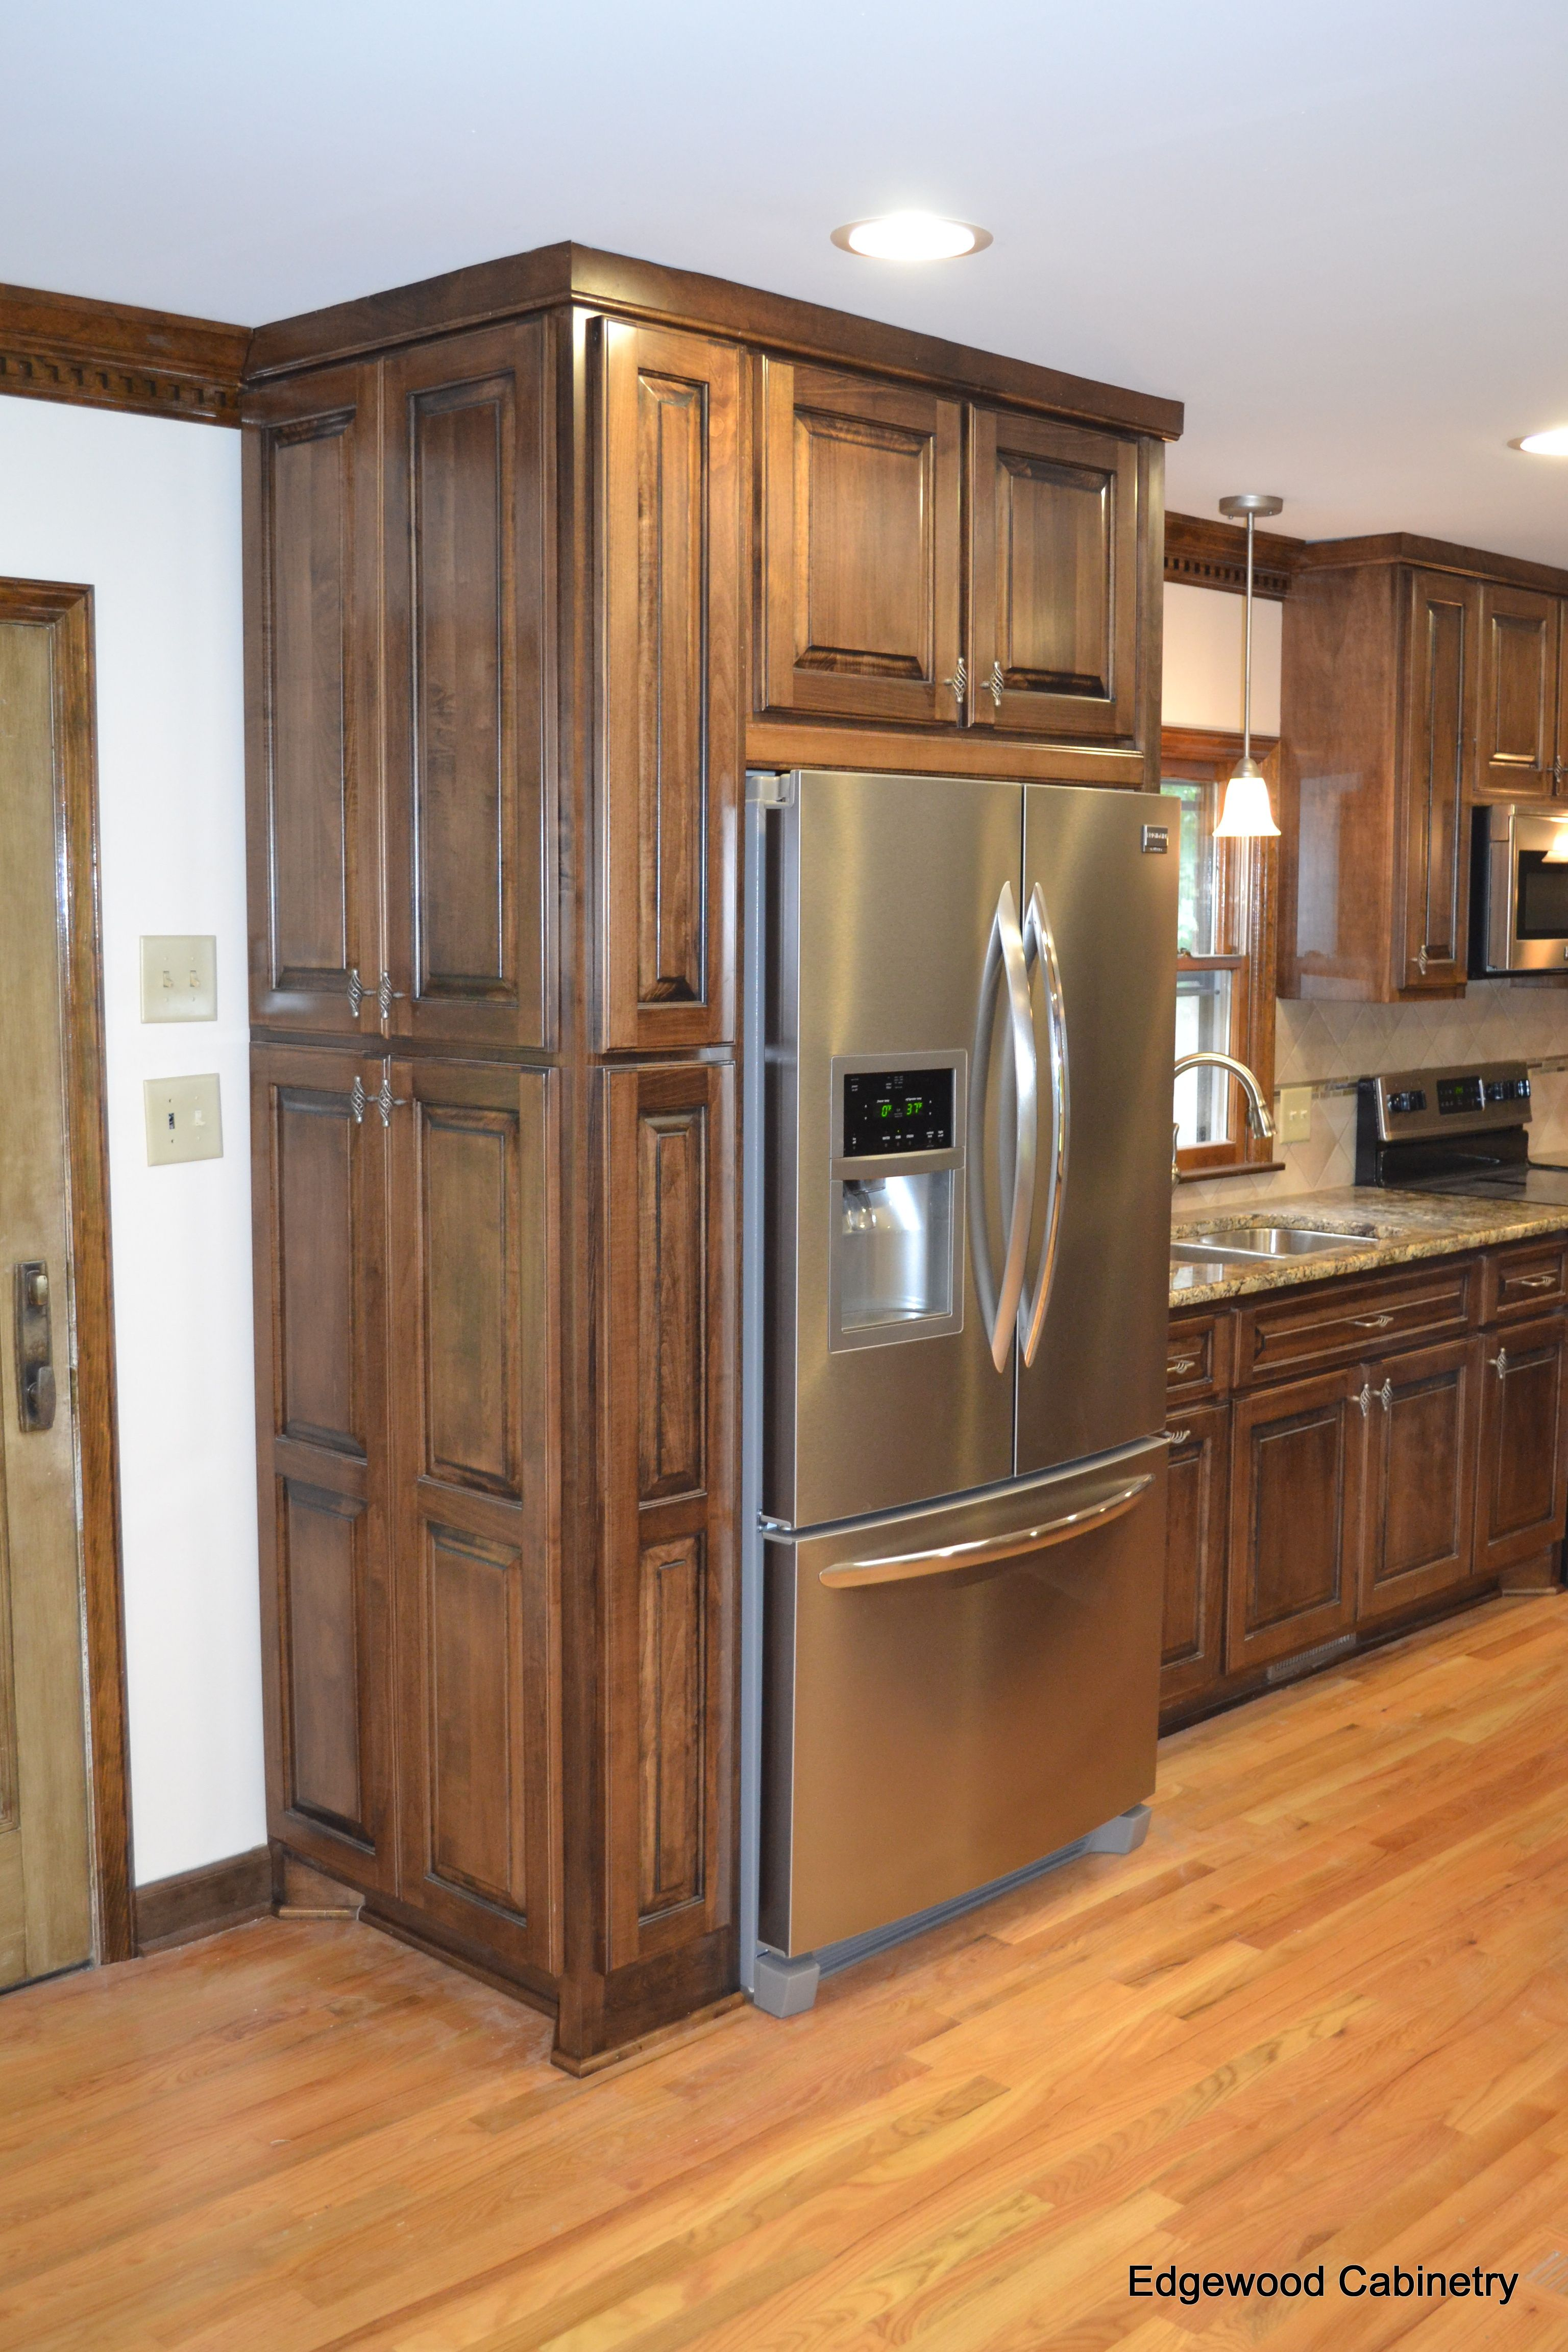 Update Kitchen Maple Cabinets Custom Maple Cabinets Finished In A Walnut Stain And Then